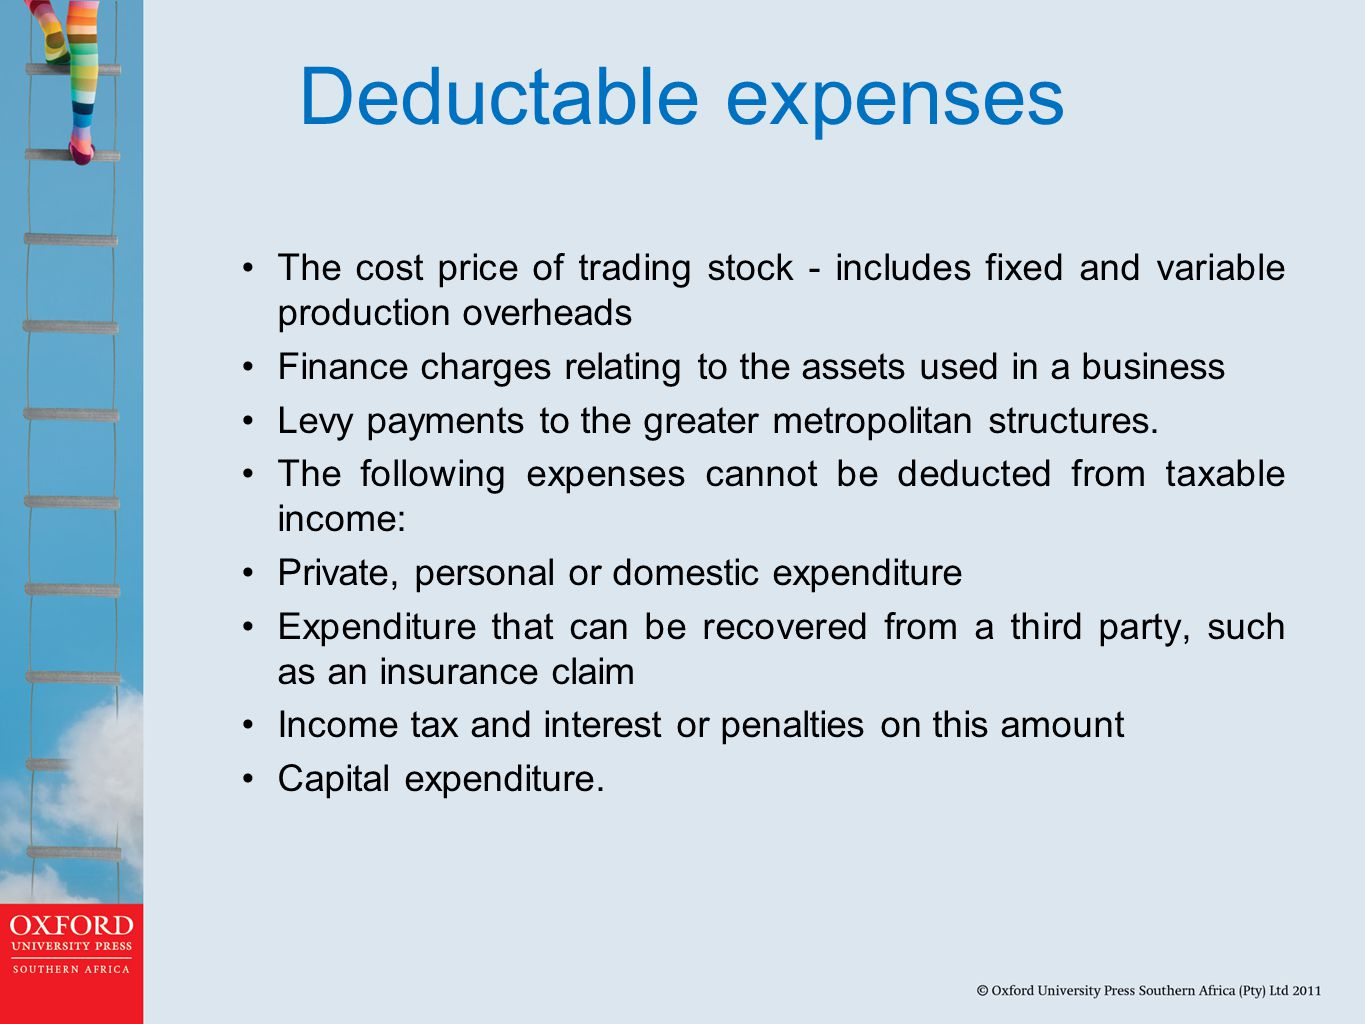 Deductable expenses The cost price of trading stock - includes fixed and variable production overheads Finance charges relating to the assets used in a business Levy payments to the greater metropolitan structures.